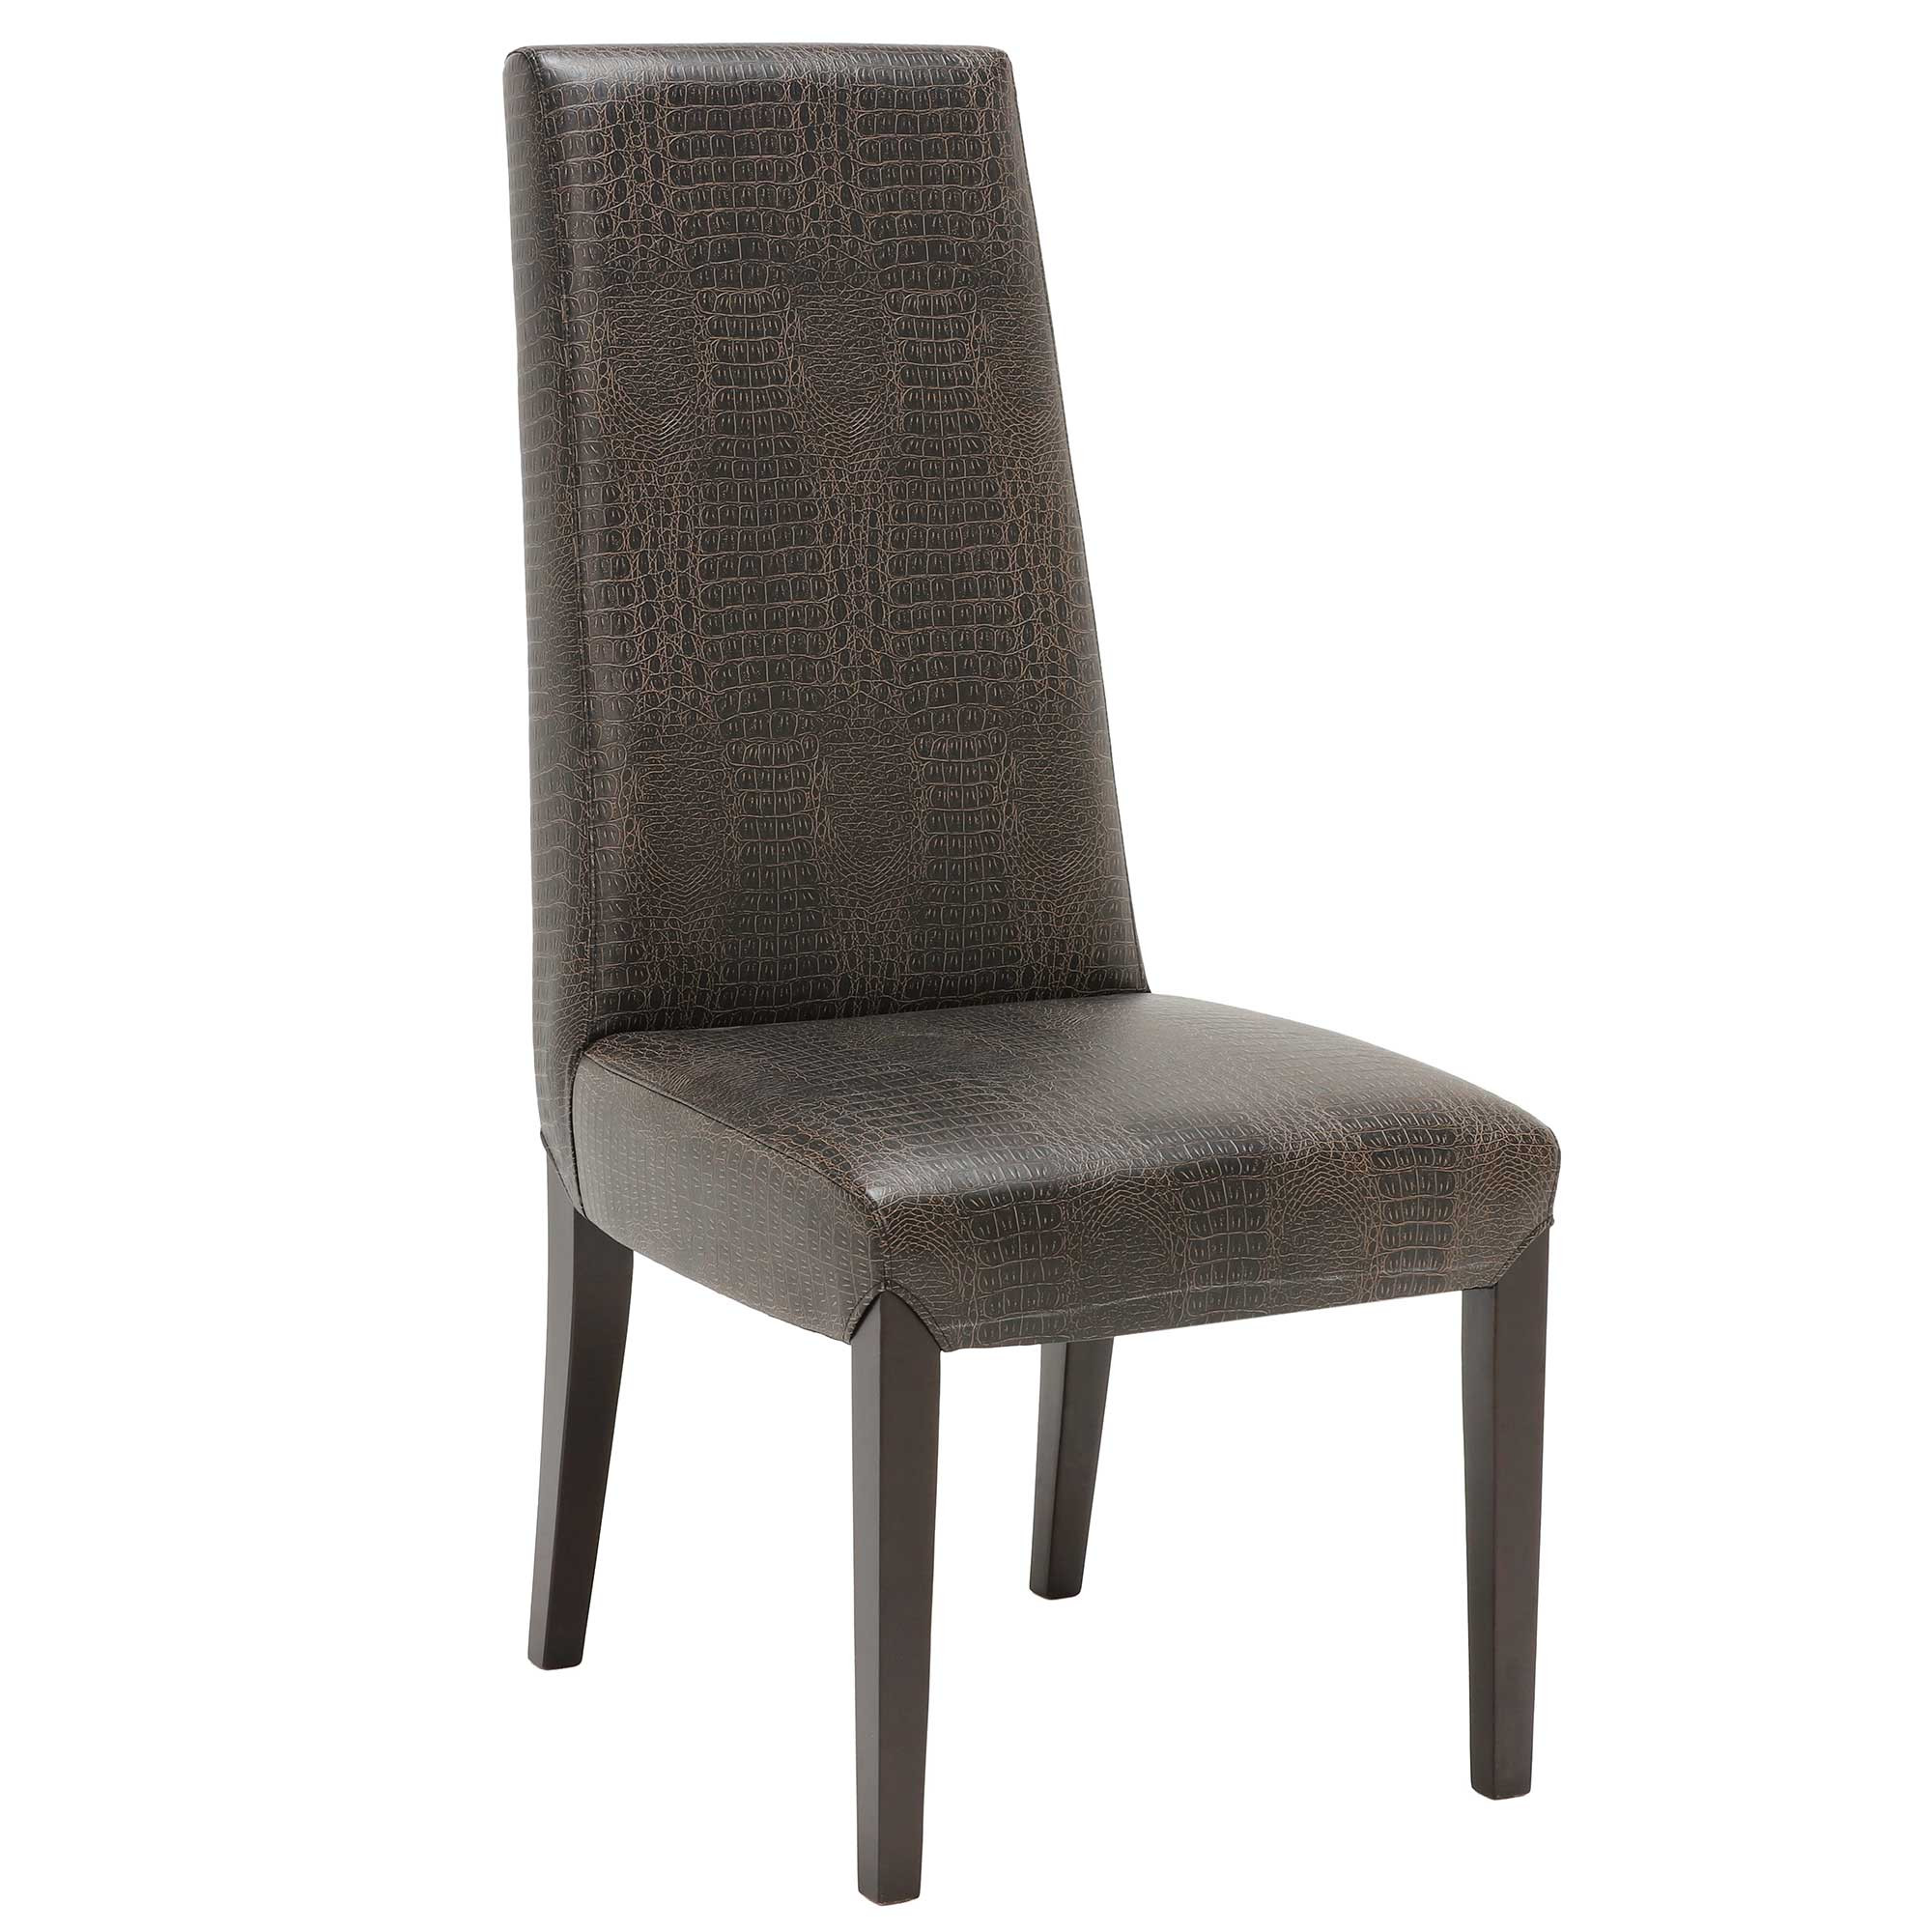 Best ideas about Leather Dining Chair . Save or Pin The Galicia Leather Dining Chair Leather Dining Chairs Now.